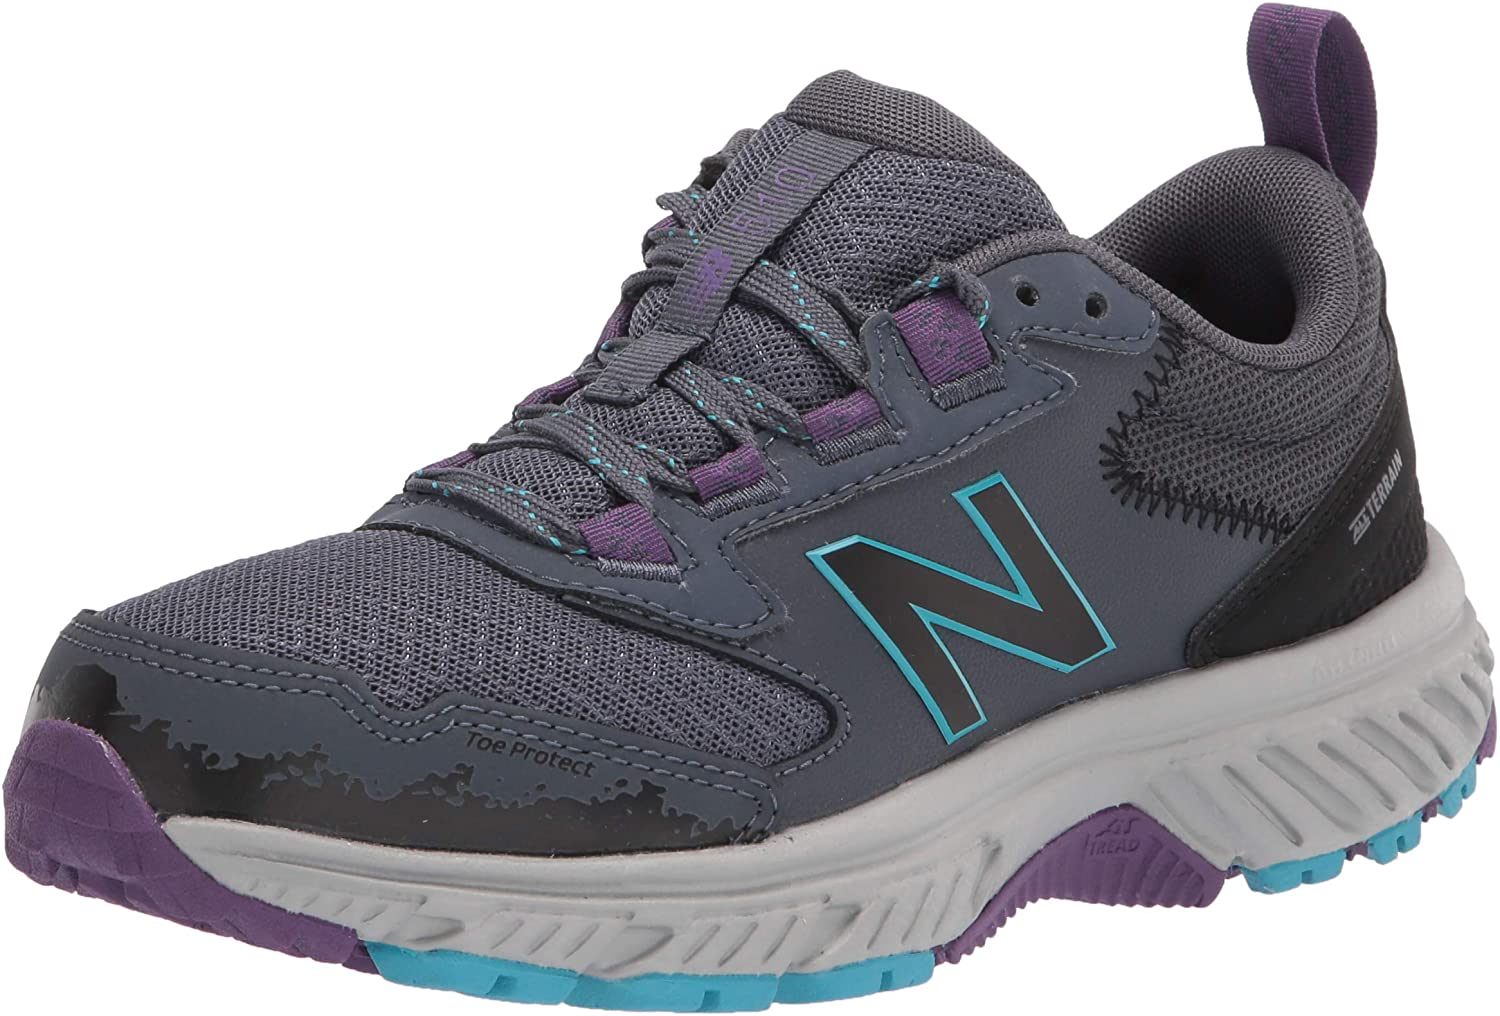 New Balance Women's 510 Sale item Trail Running Limited time trial price V5 Shoe